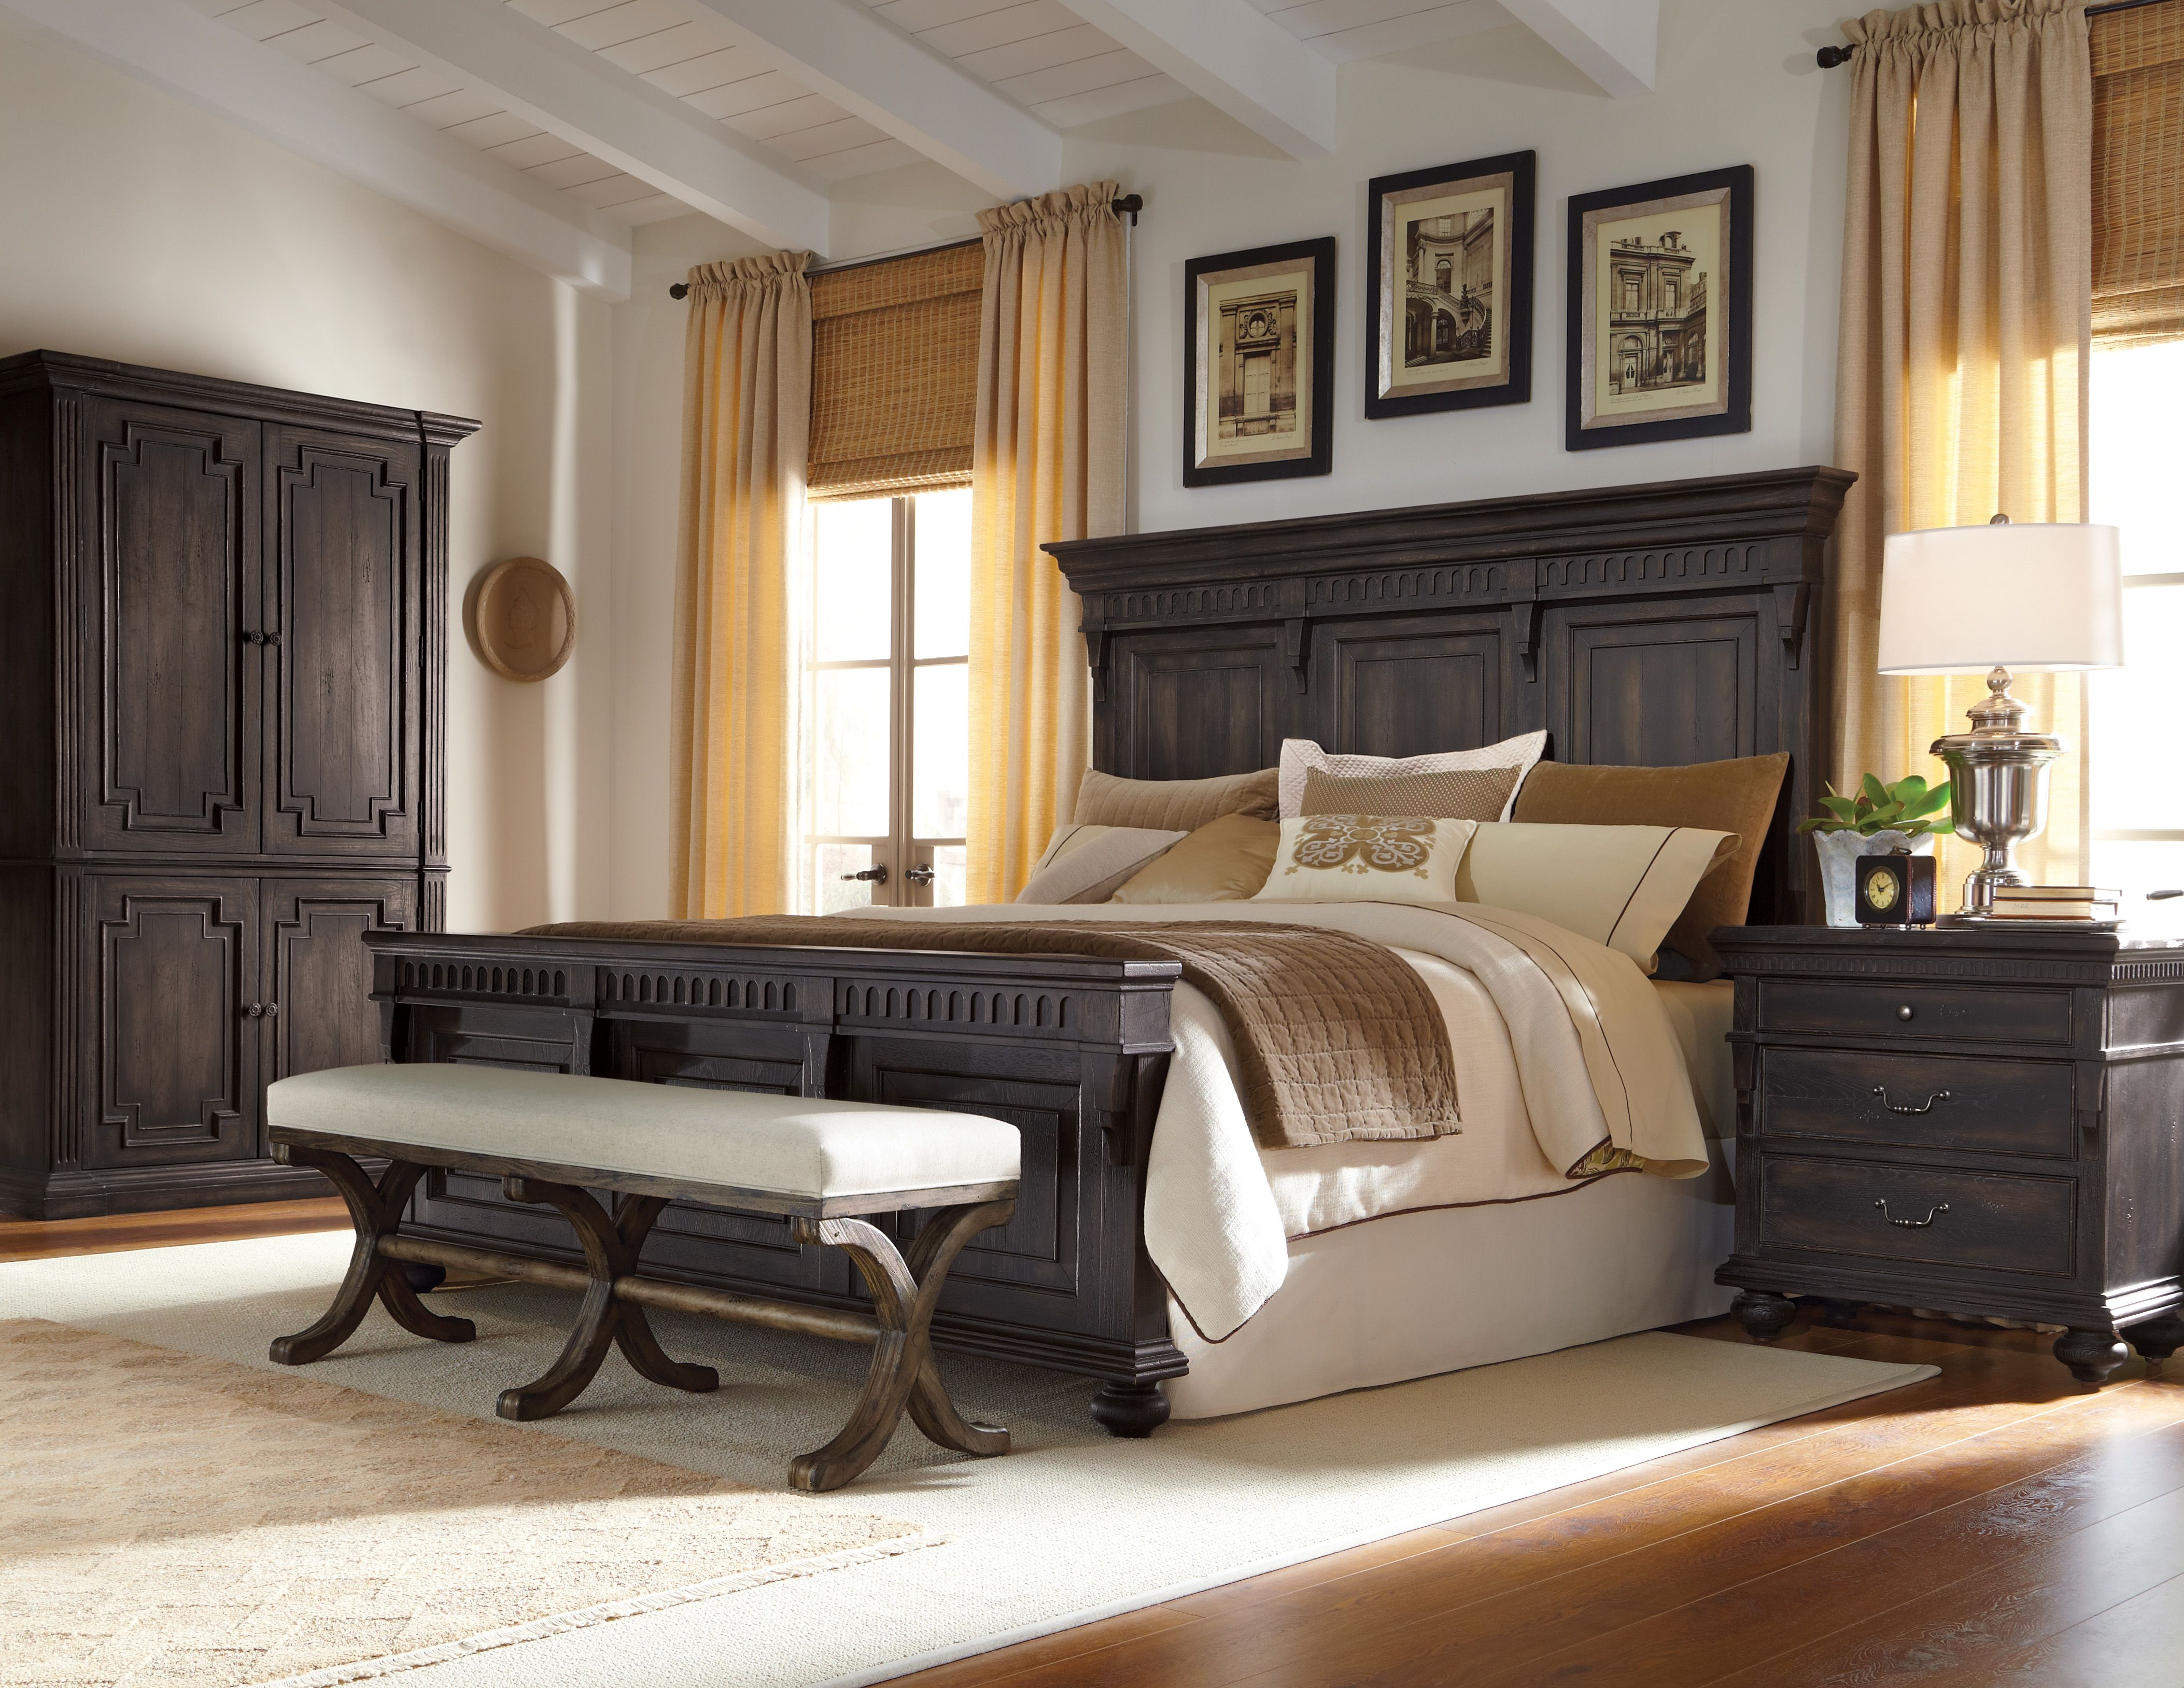 pulaski bedroom furniture matching kentshire bedroom set from accentrics home by 12946